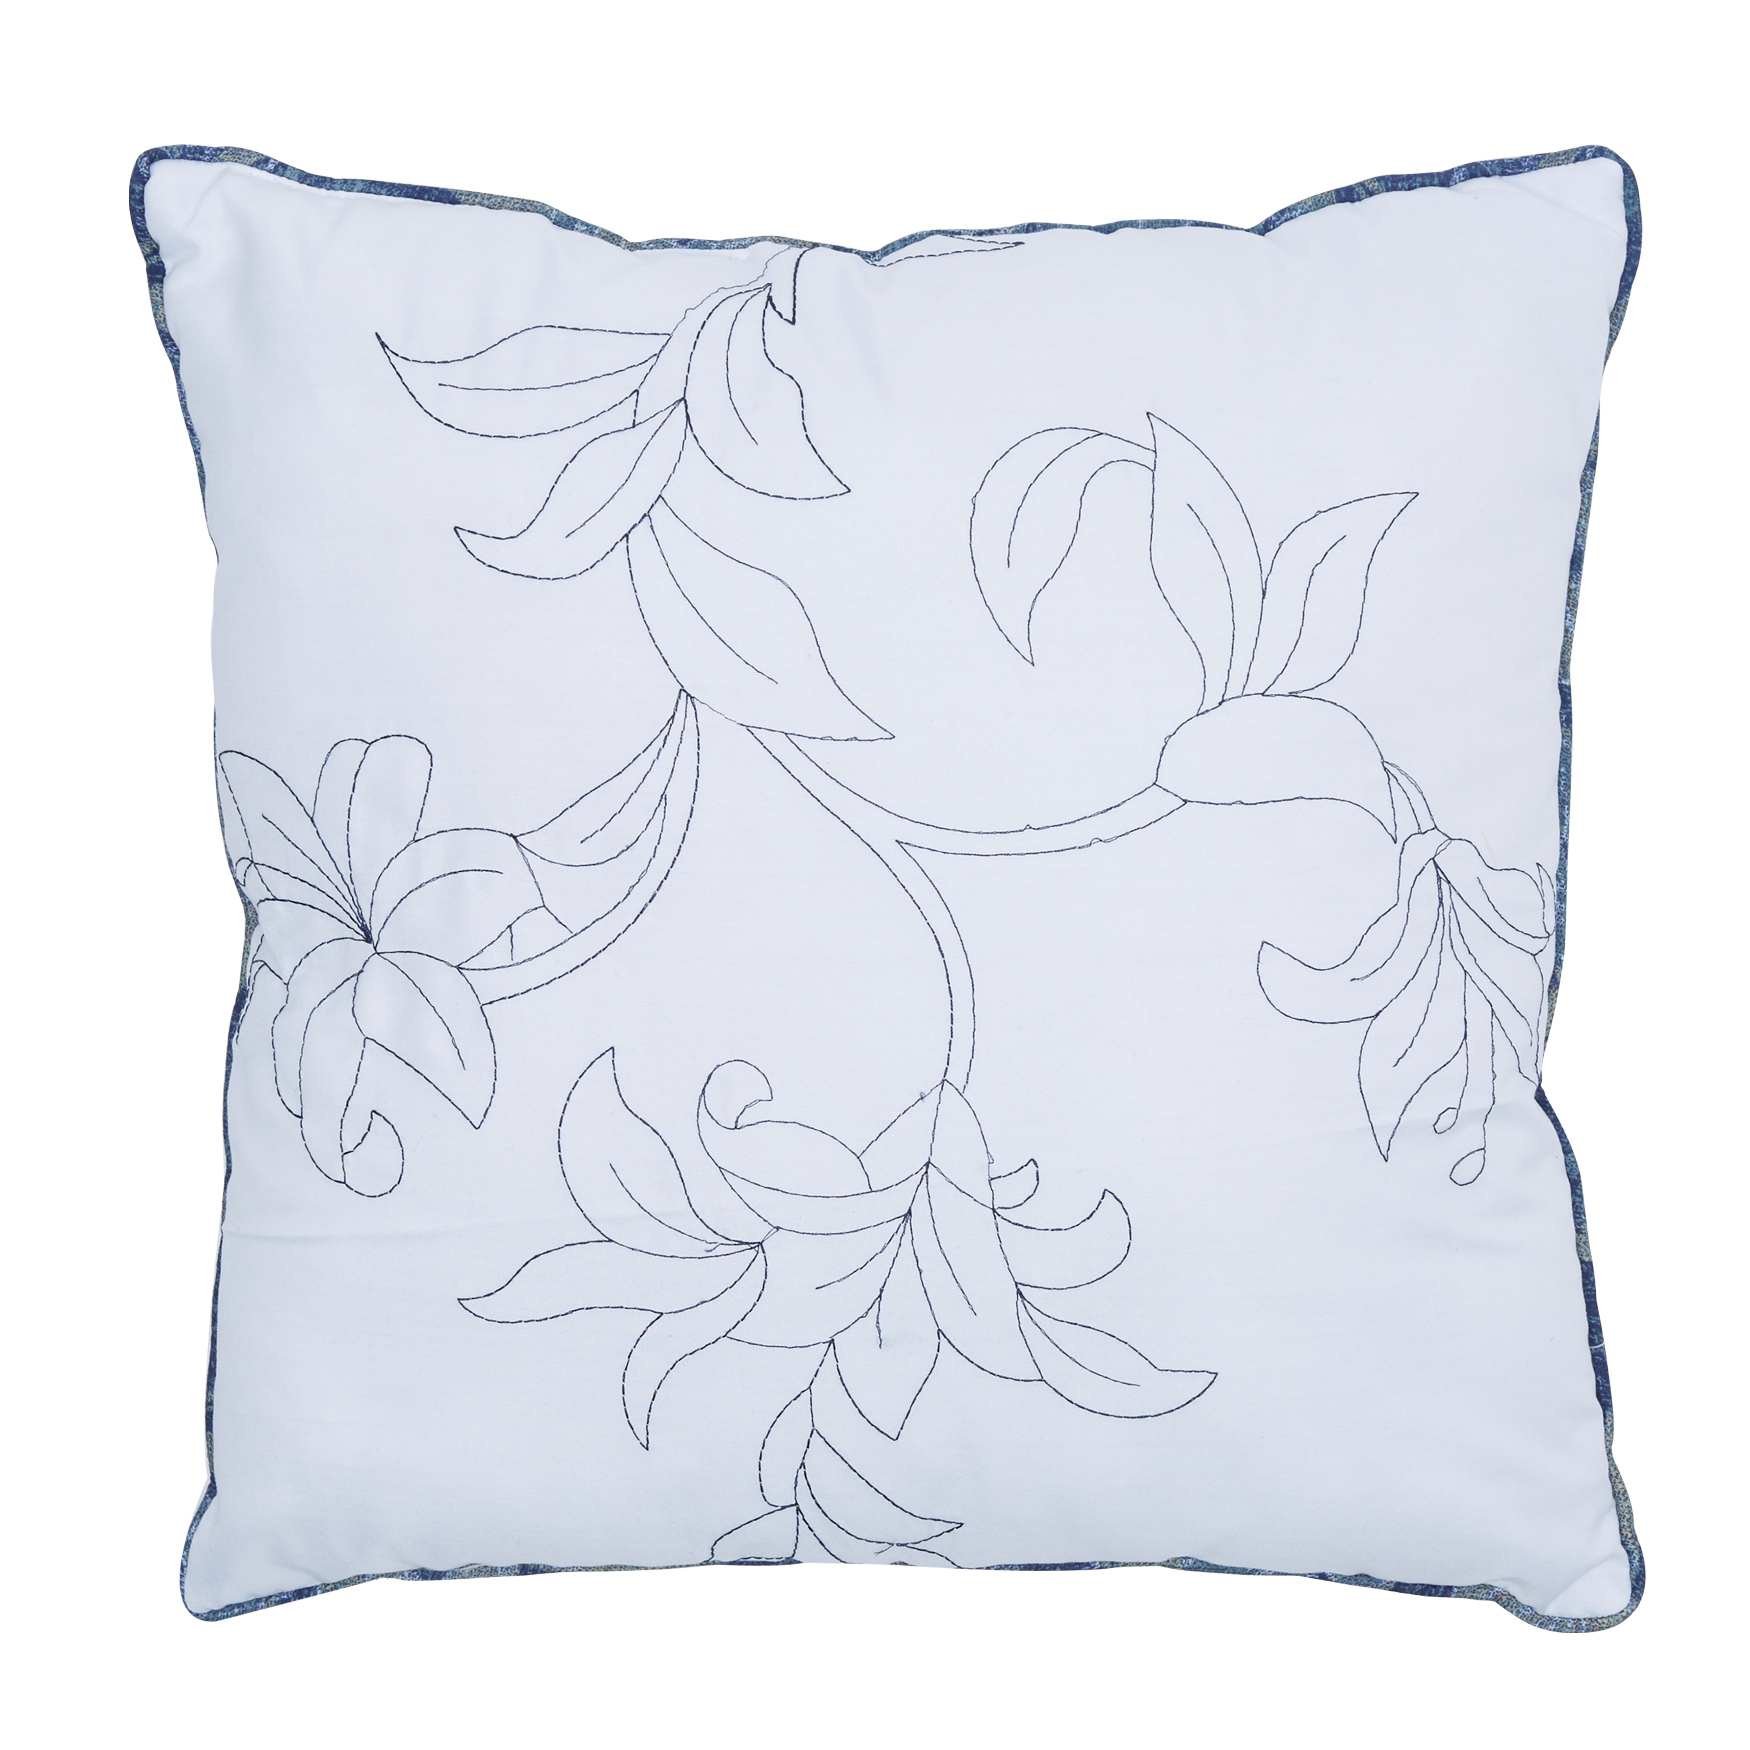 Catherine 16' Sq. Pillow, BLUE MULTI